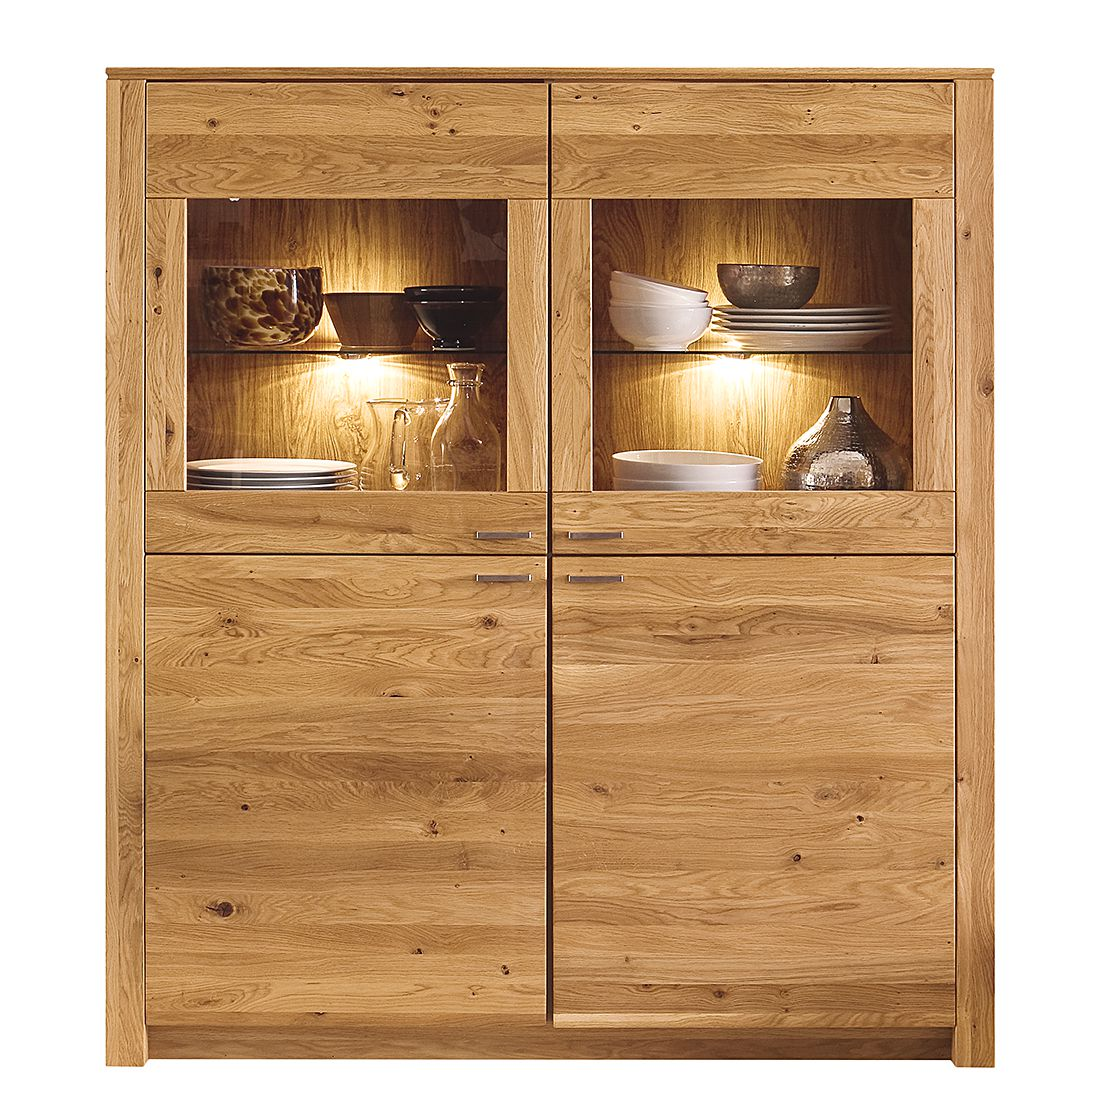 highboard chalet i eiche teilmassiv ge lt gewachst highboard ohne beleuchtung. Black Bedroom Furniture Sets. Home Design Ideas